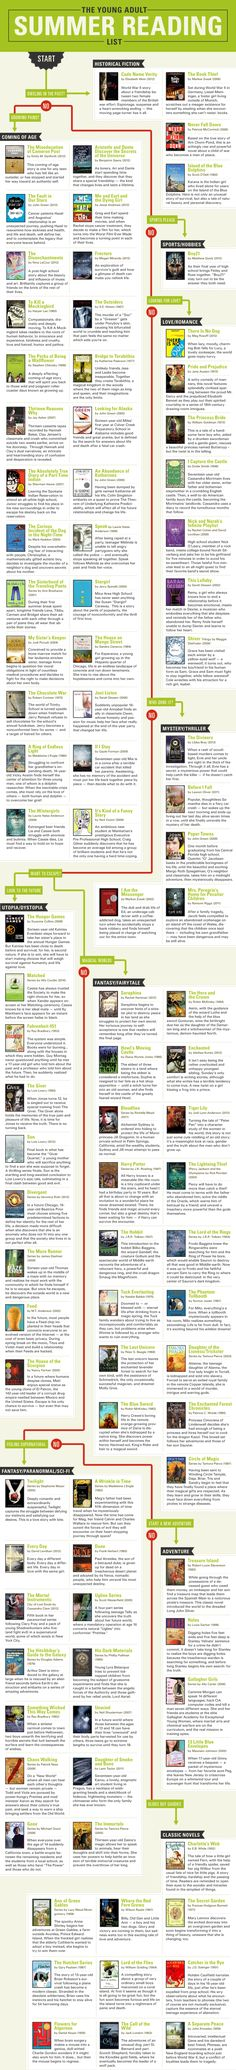 Teen Summer Reading Flowchart - An infographic anyone could use for teen or crossover reader's advisory.